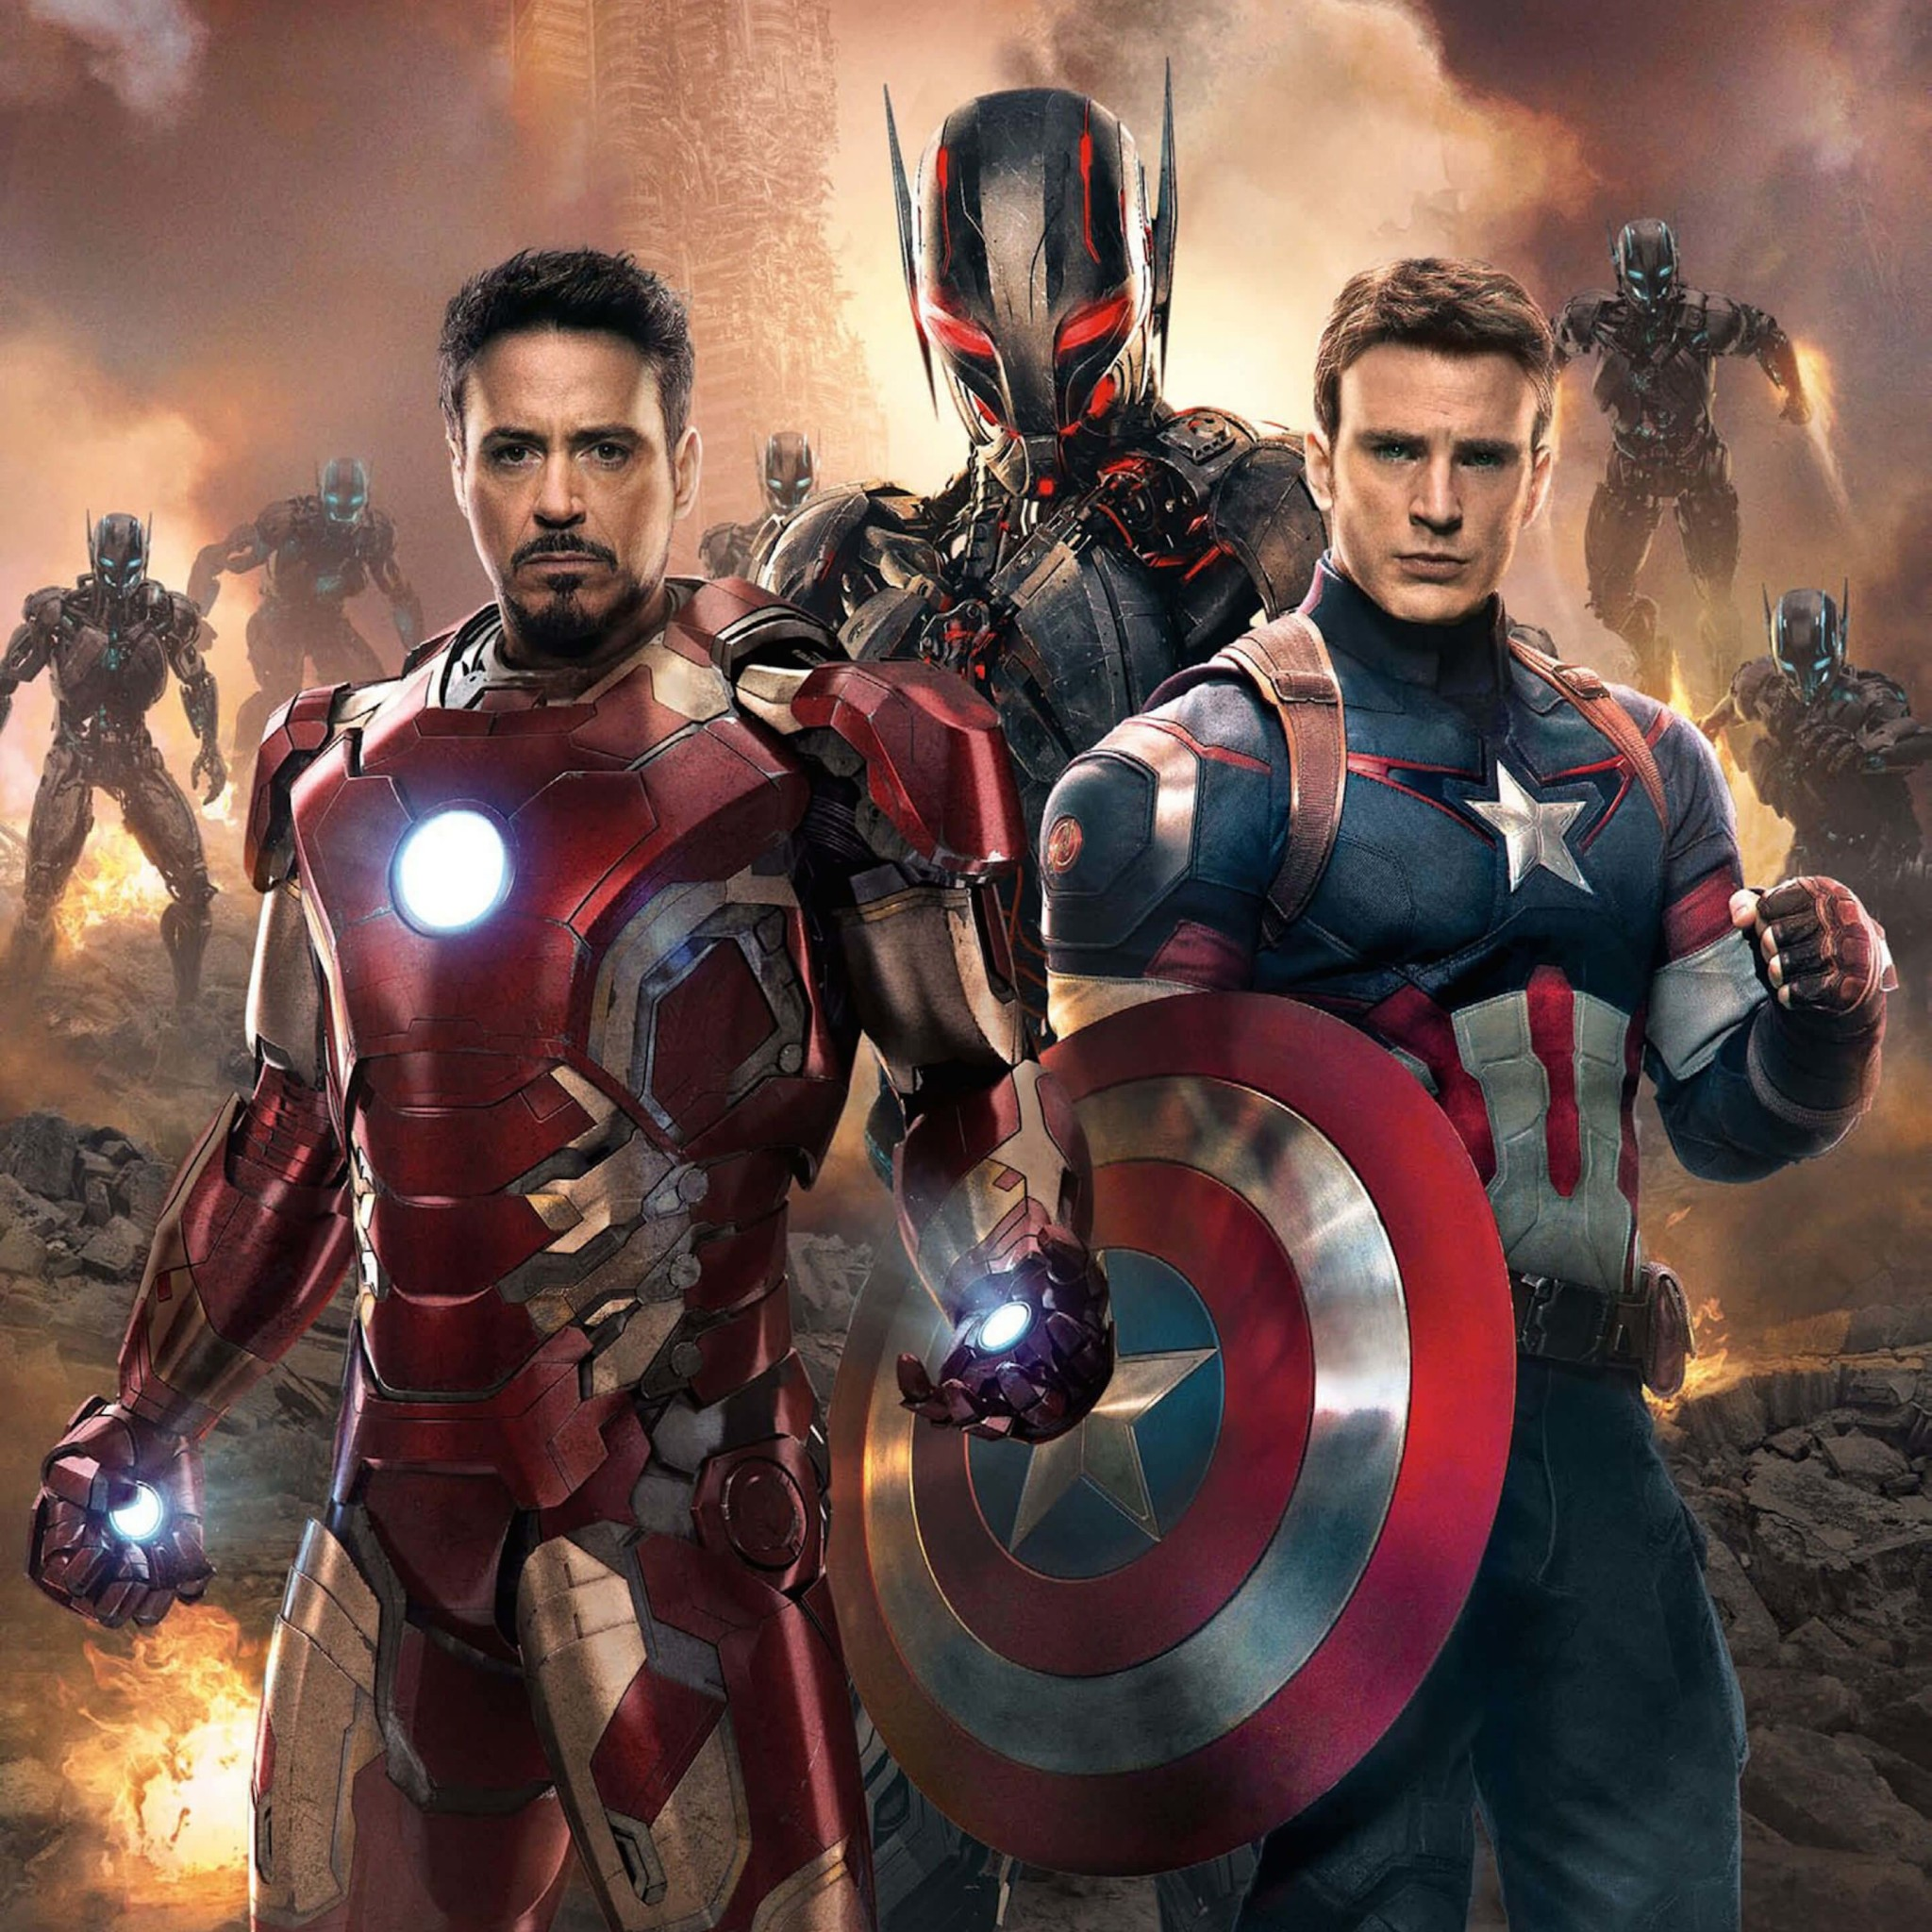 The Avengers: Age of Ultron - Iron Man and Captain America Wallpaper for Google Nexus 9